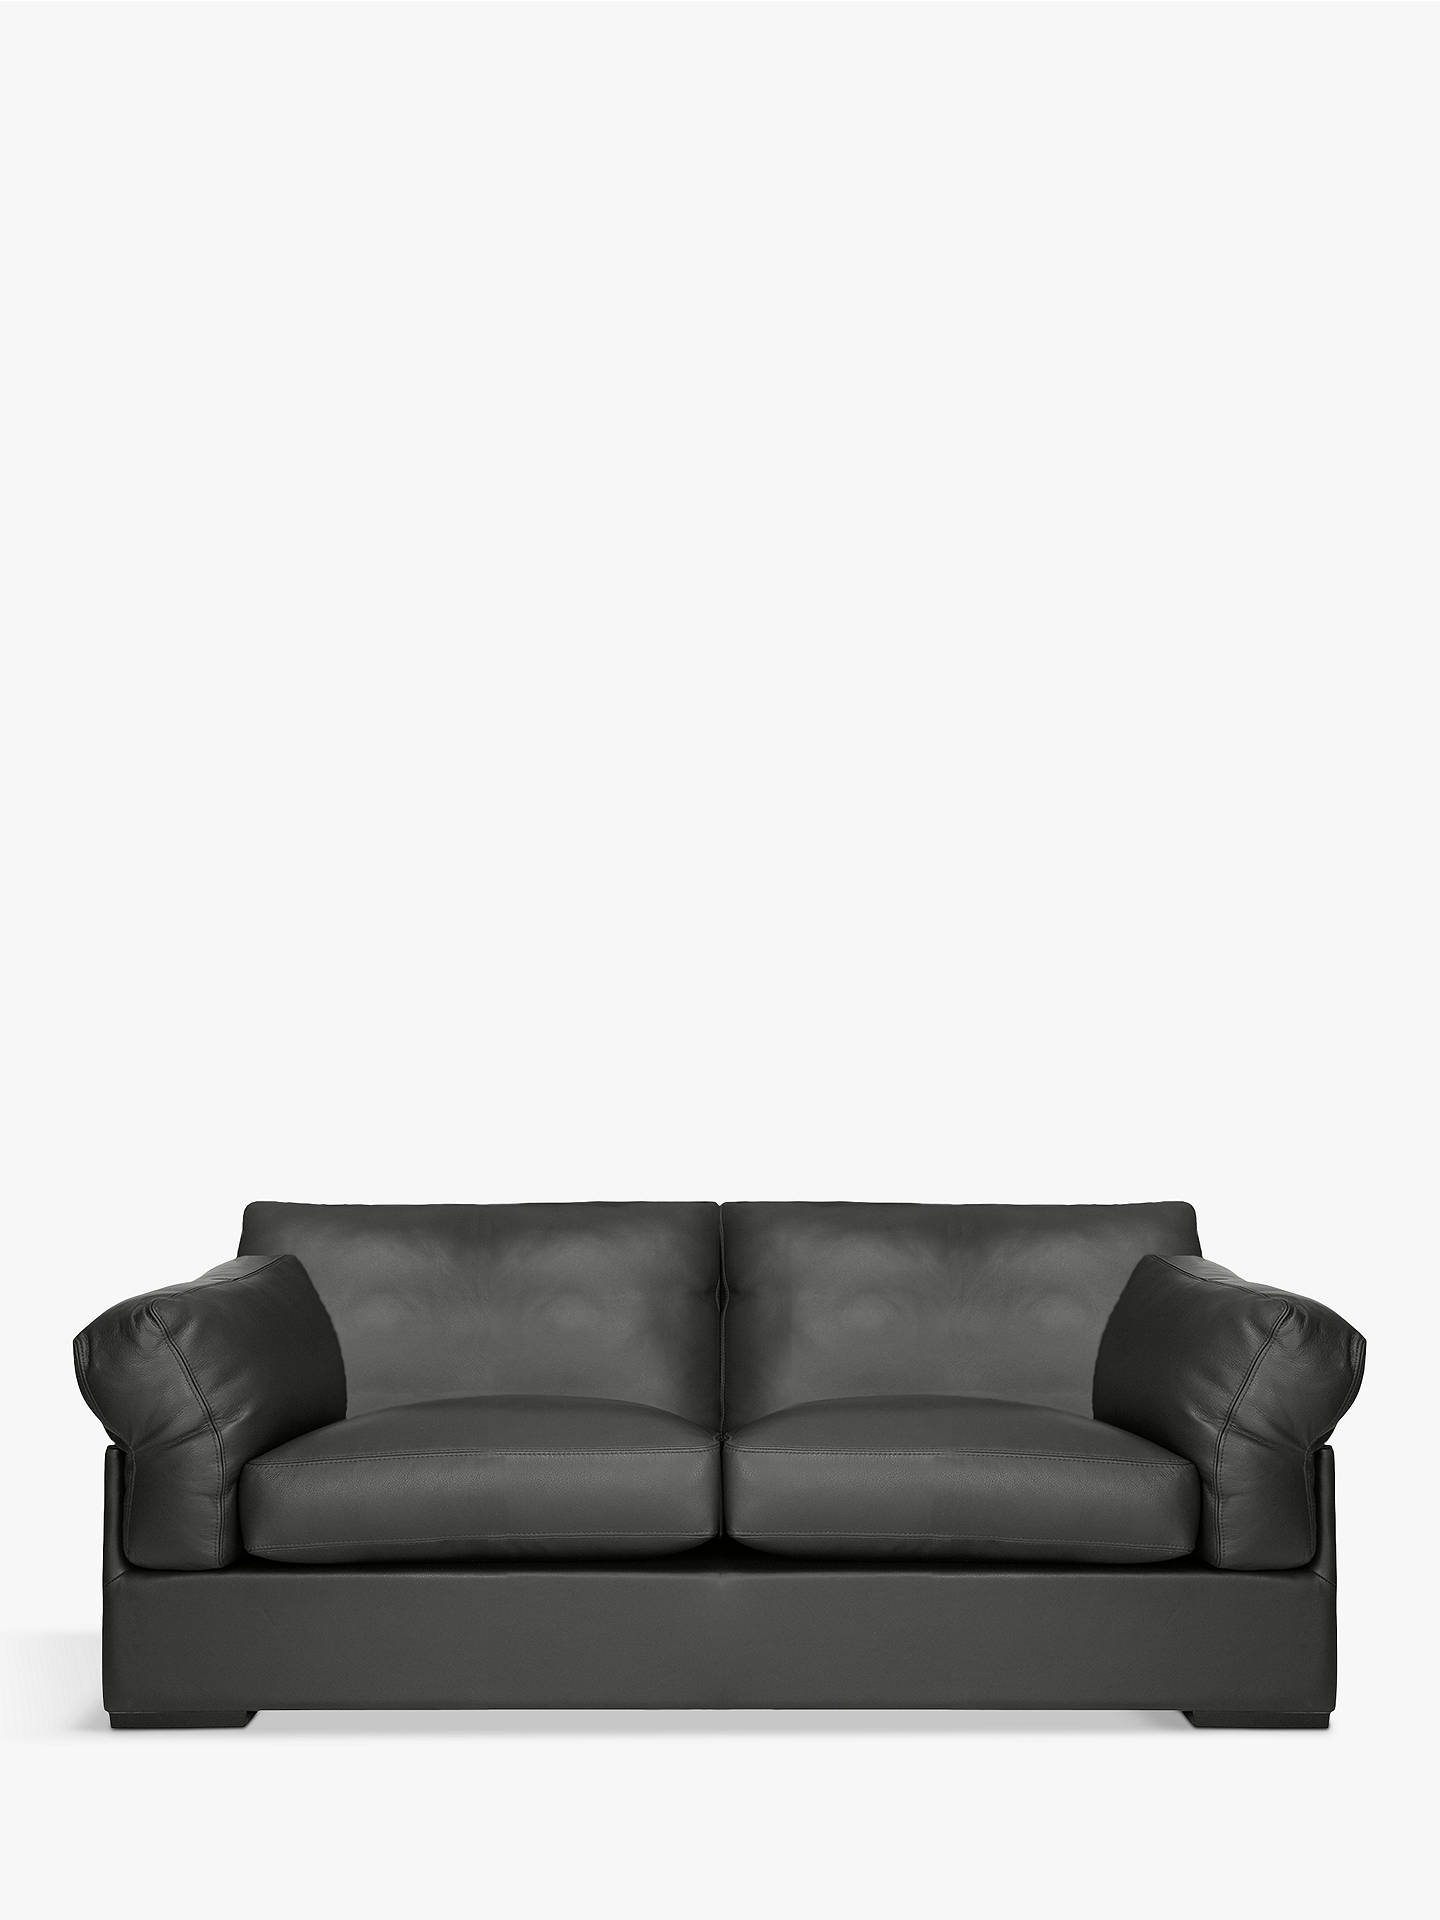 Buy John Lewis & Partners Java Large 3 Seater Leather Sofa, Dark Leg, Winchester Anthracite Online at johnlewis.com